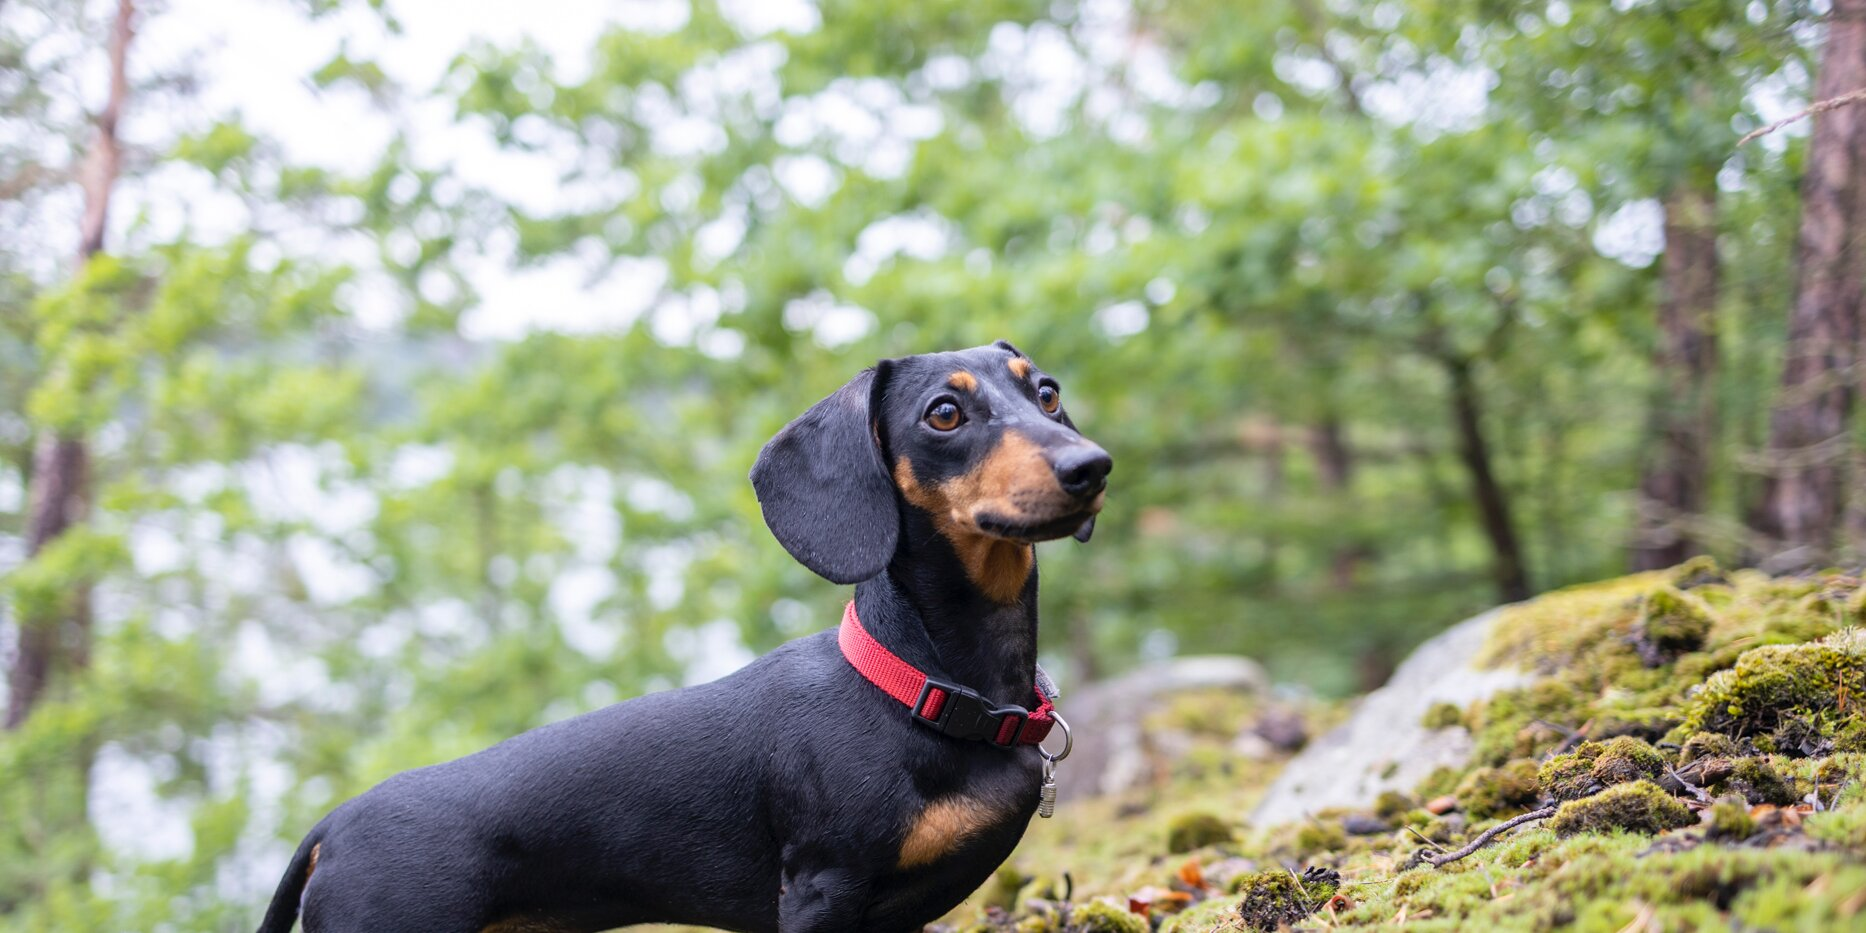 10 Dog Breeds That Chase Away Mice and Other Household Pests